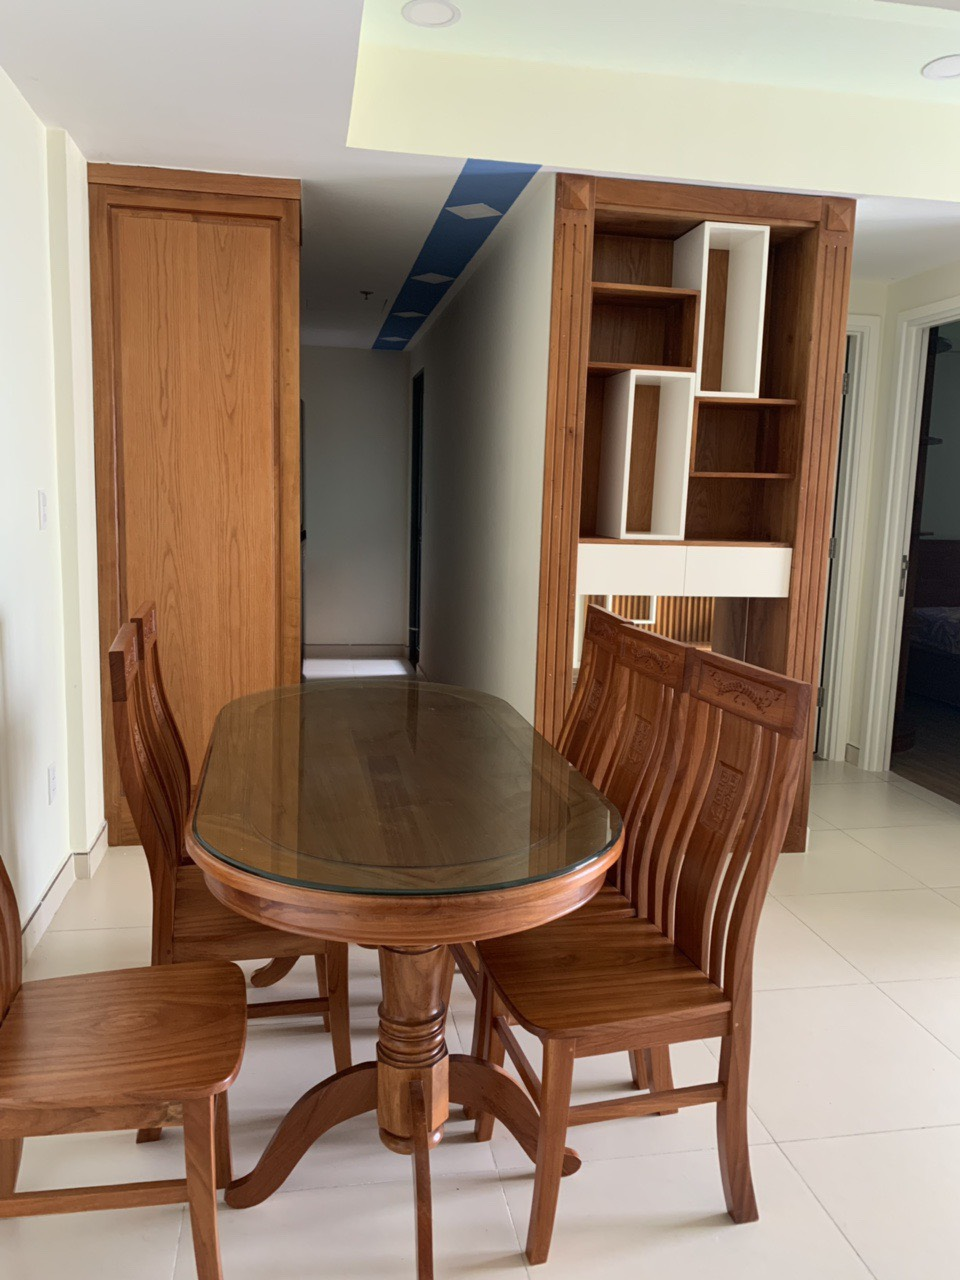 Apartment for rent D2142628 (4)